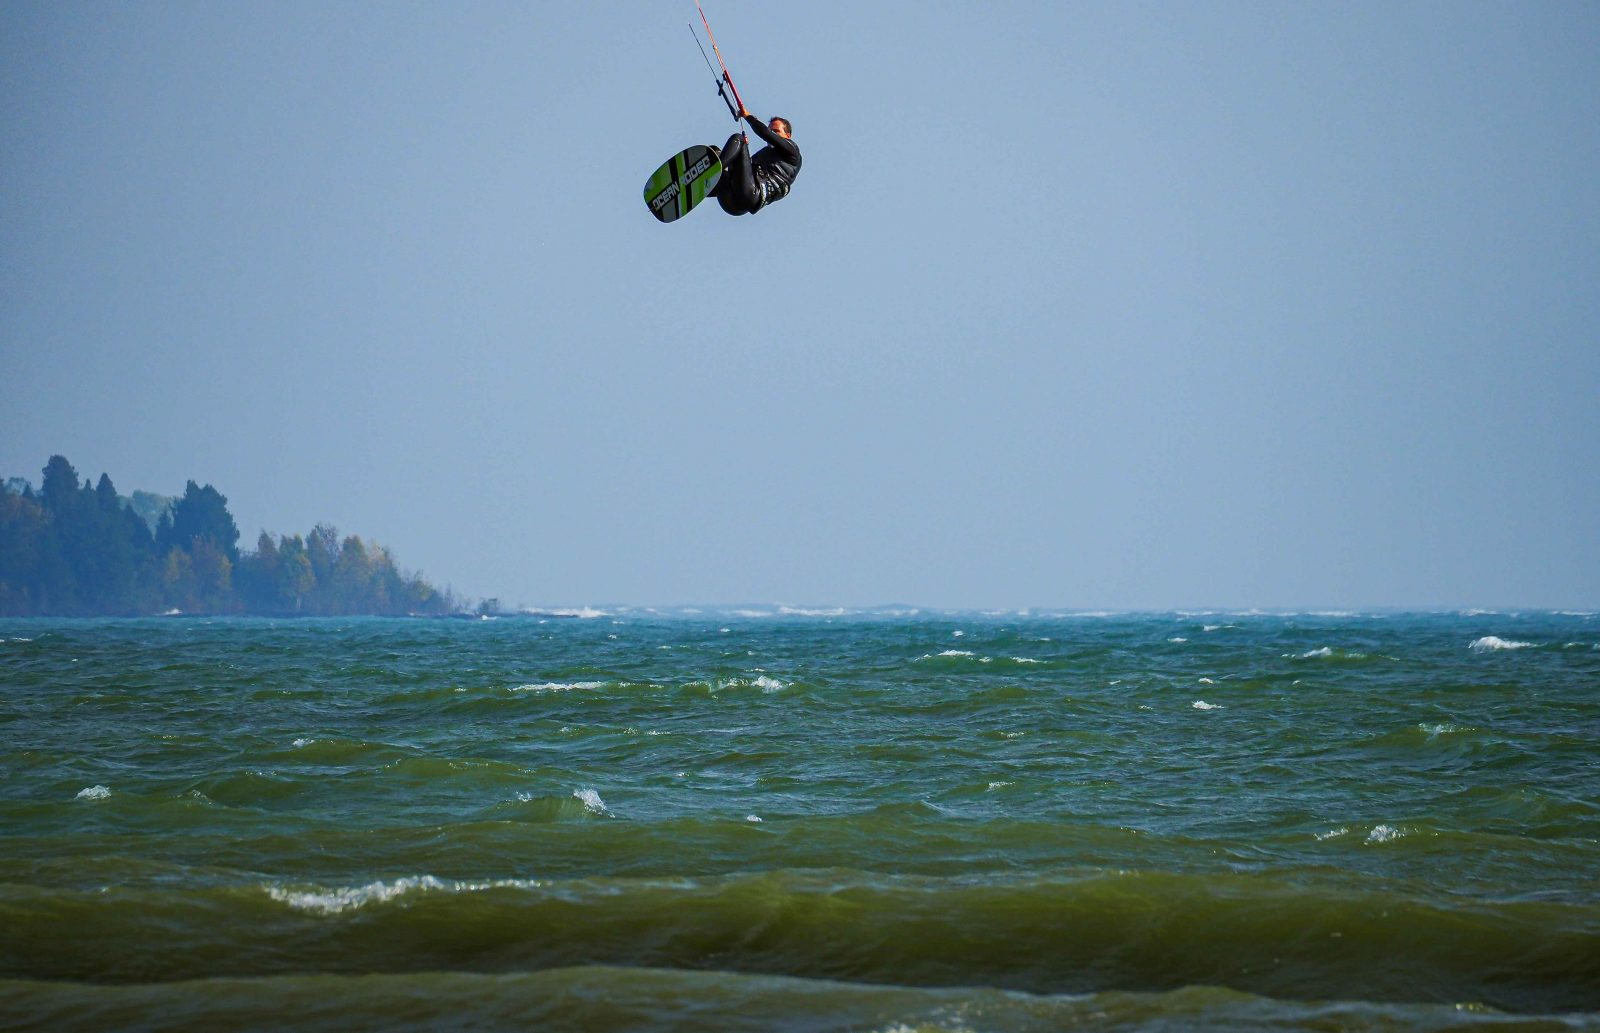 Kite Surfing in the Air